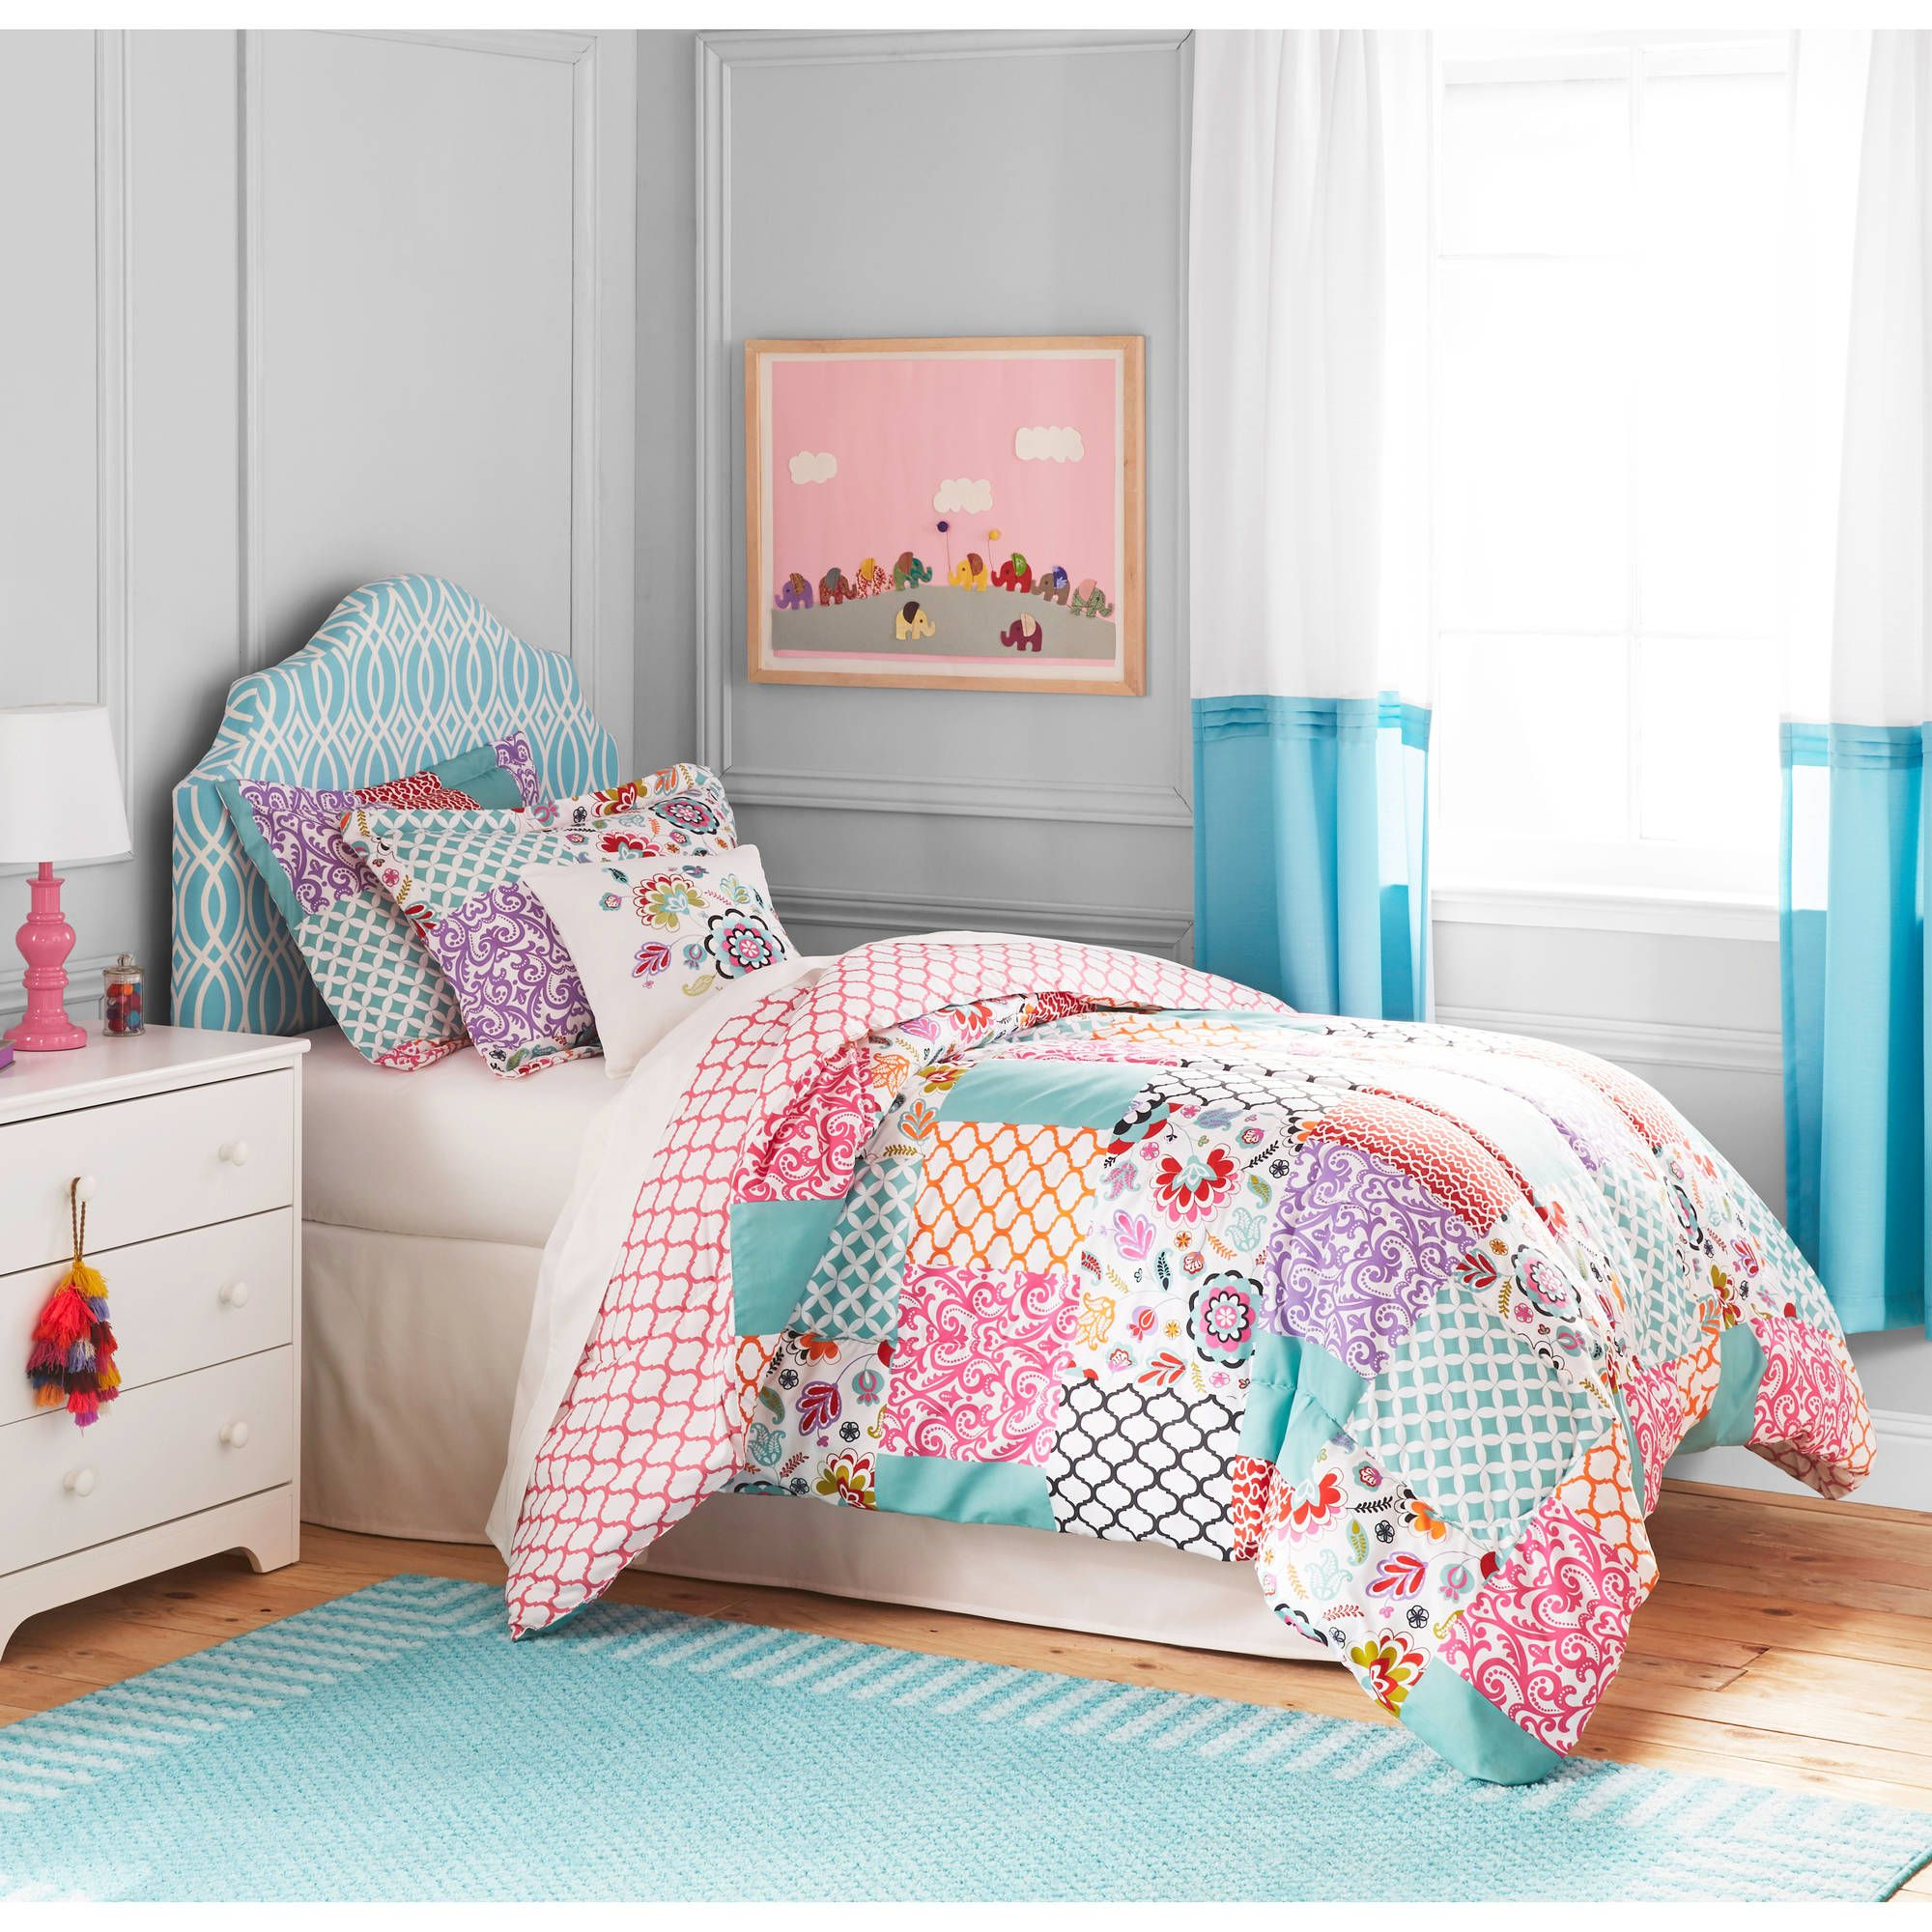 for sale of bed toddler full bedding toddlers girl furniture size badcock kitty comforter bedroom sets hello set